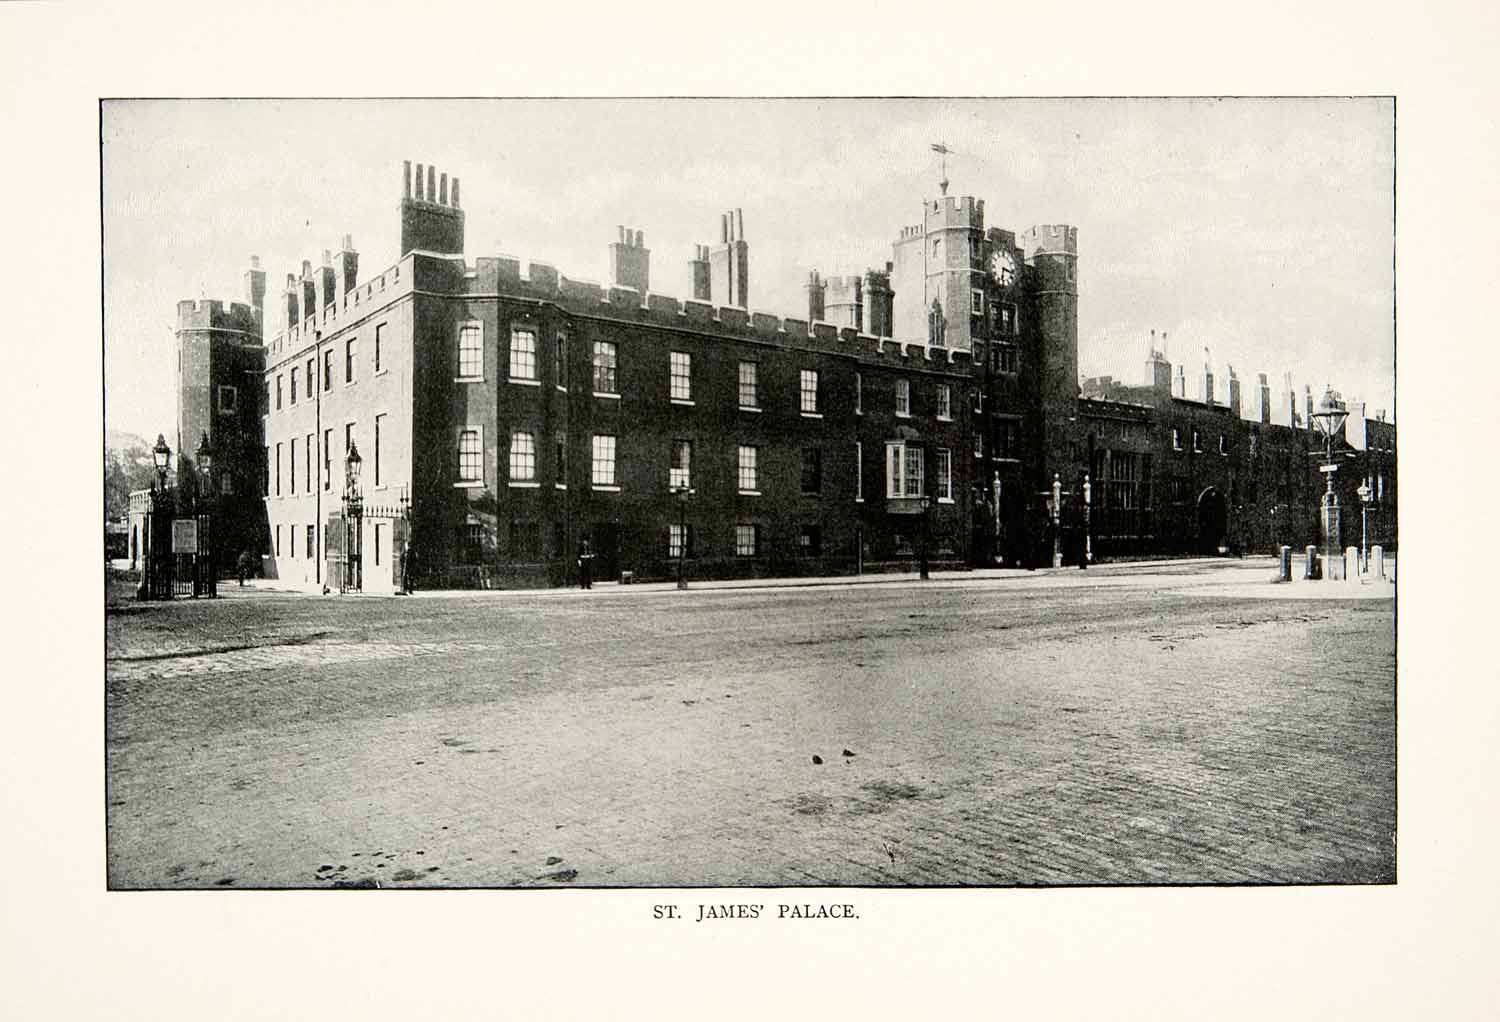 1902 Print St James Palace London England Pall Mall Park Royal Court XGNB6 - Period Paper